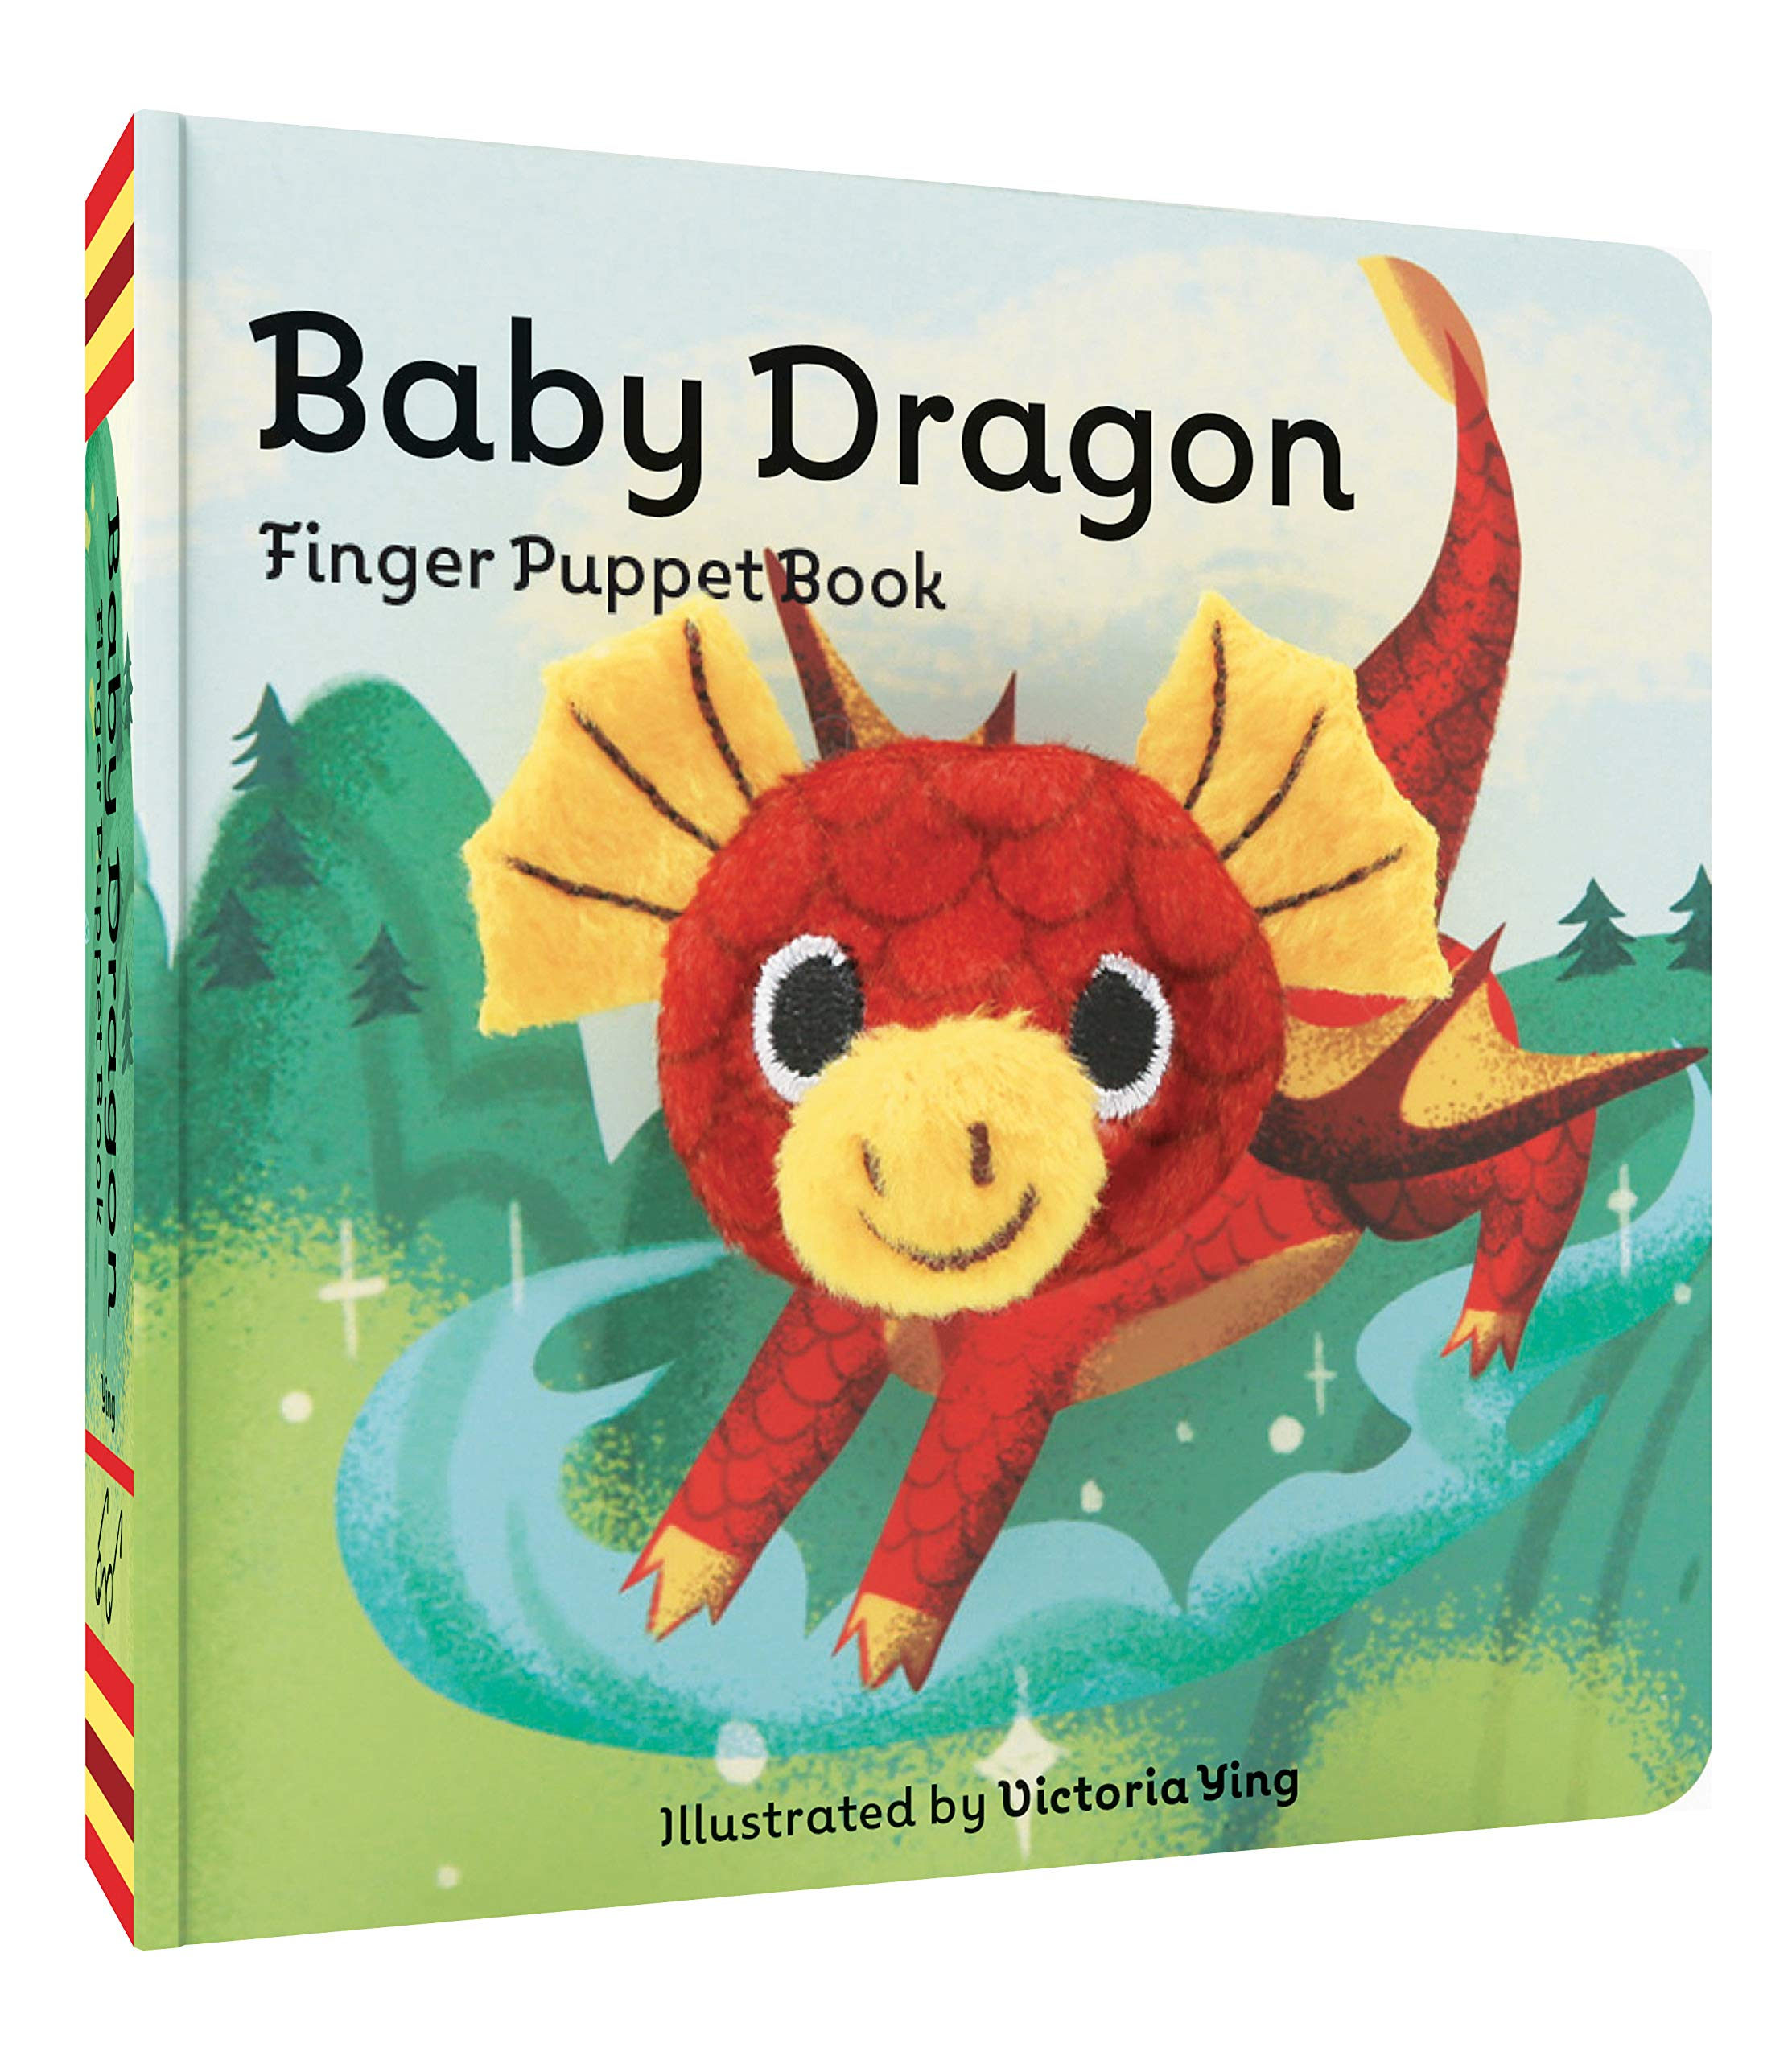 Amazon.com: Baby Dragon: Finger Puppet Book (Finger Puppet ...